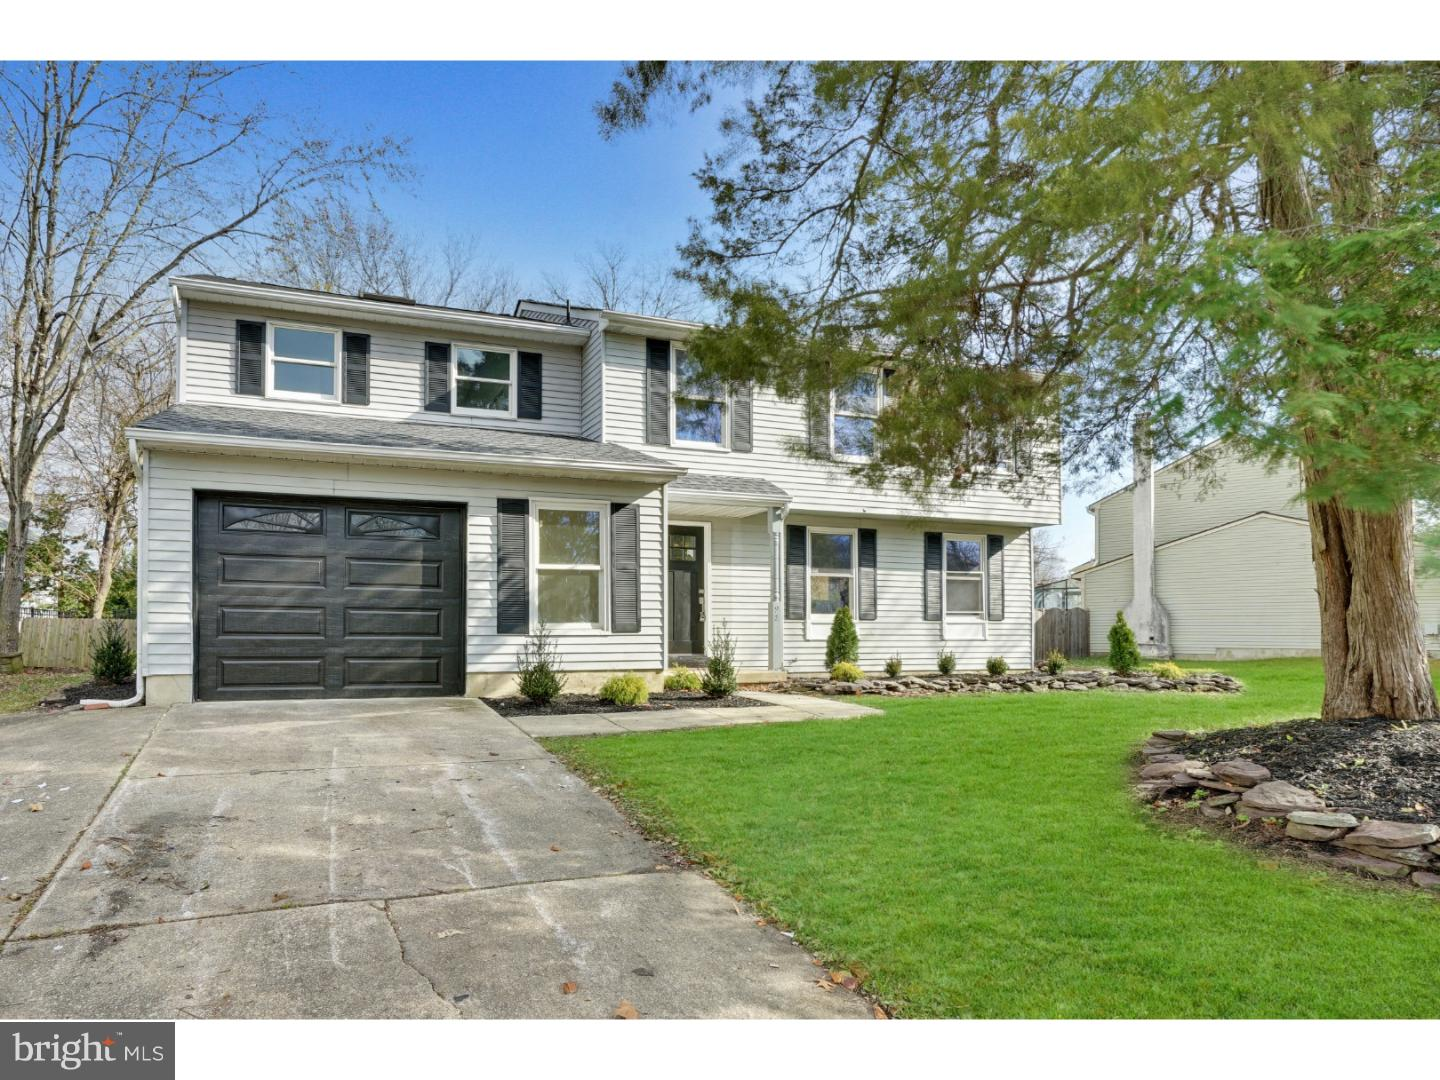 Single Family Home for Sale at 92 KENT Avenue Evesham Twp, New Jersey 08053 United States